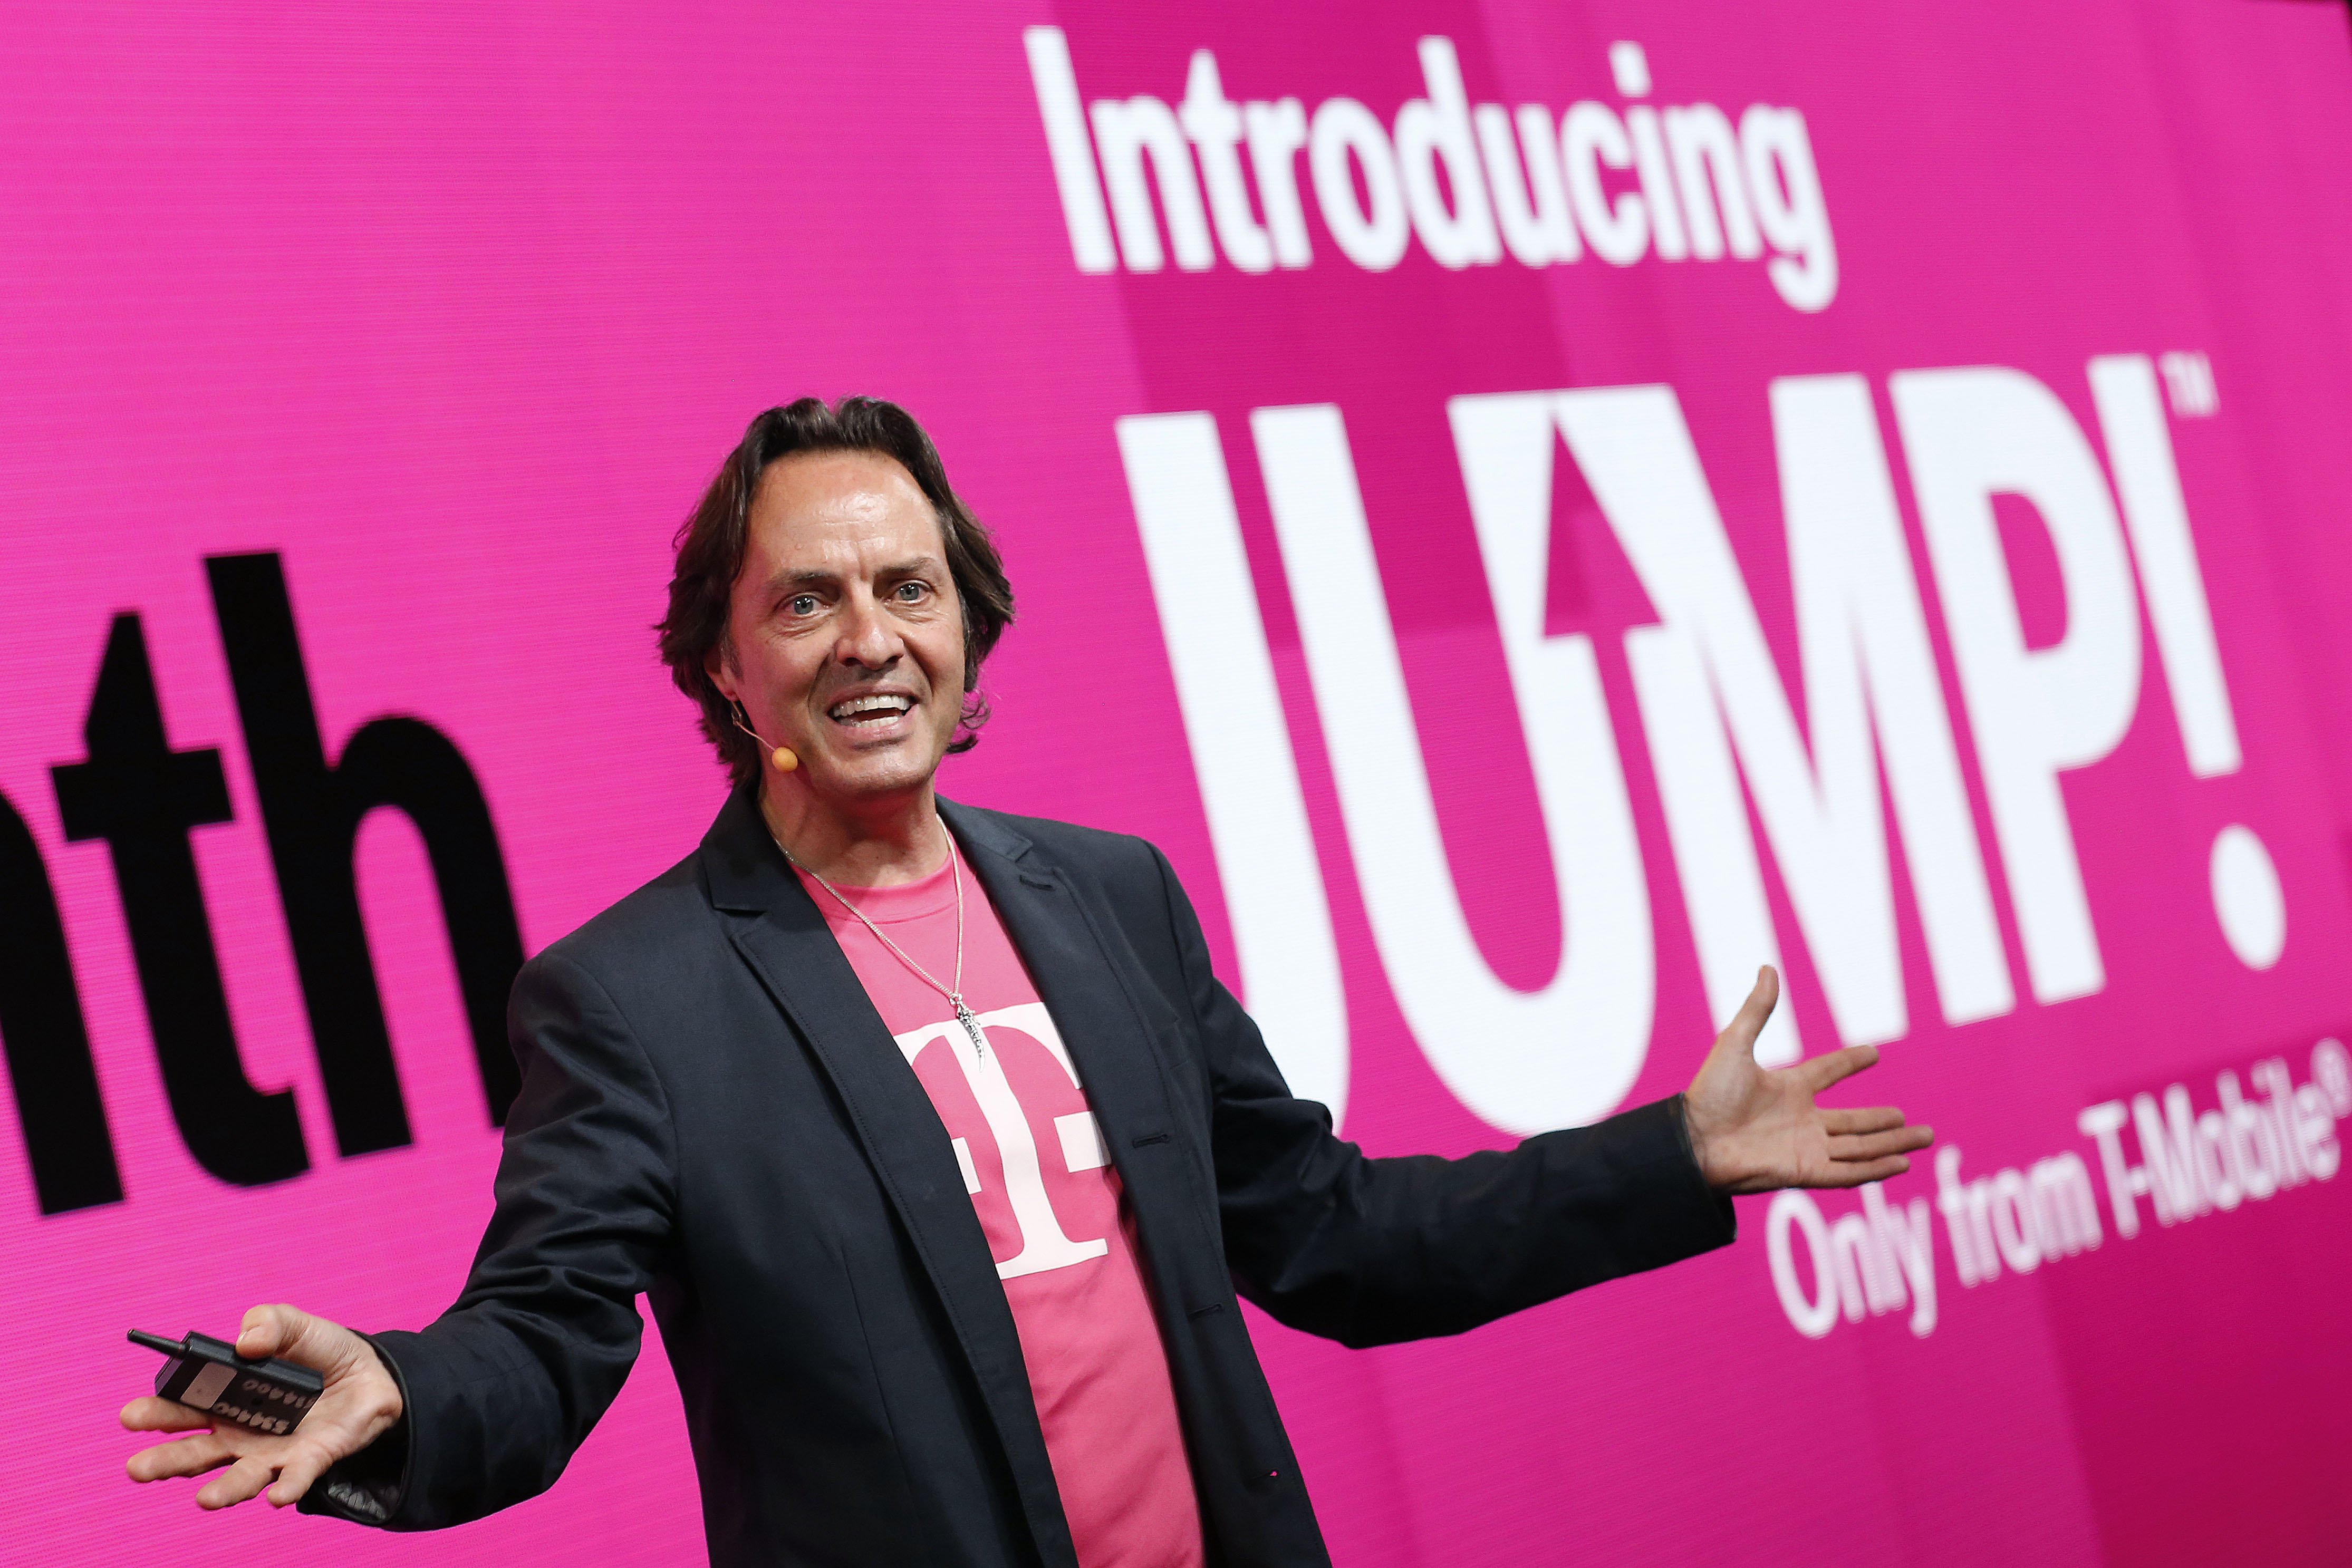 T Mobile Ceo John Legere Says Without The Iphone A Carrier Is